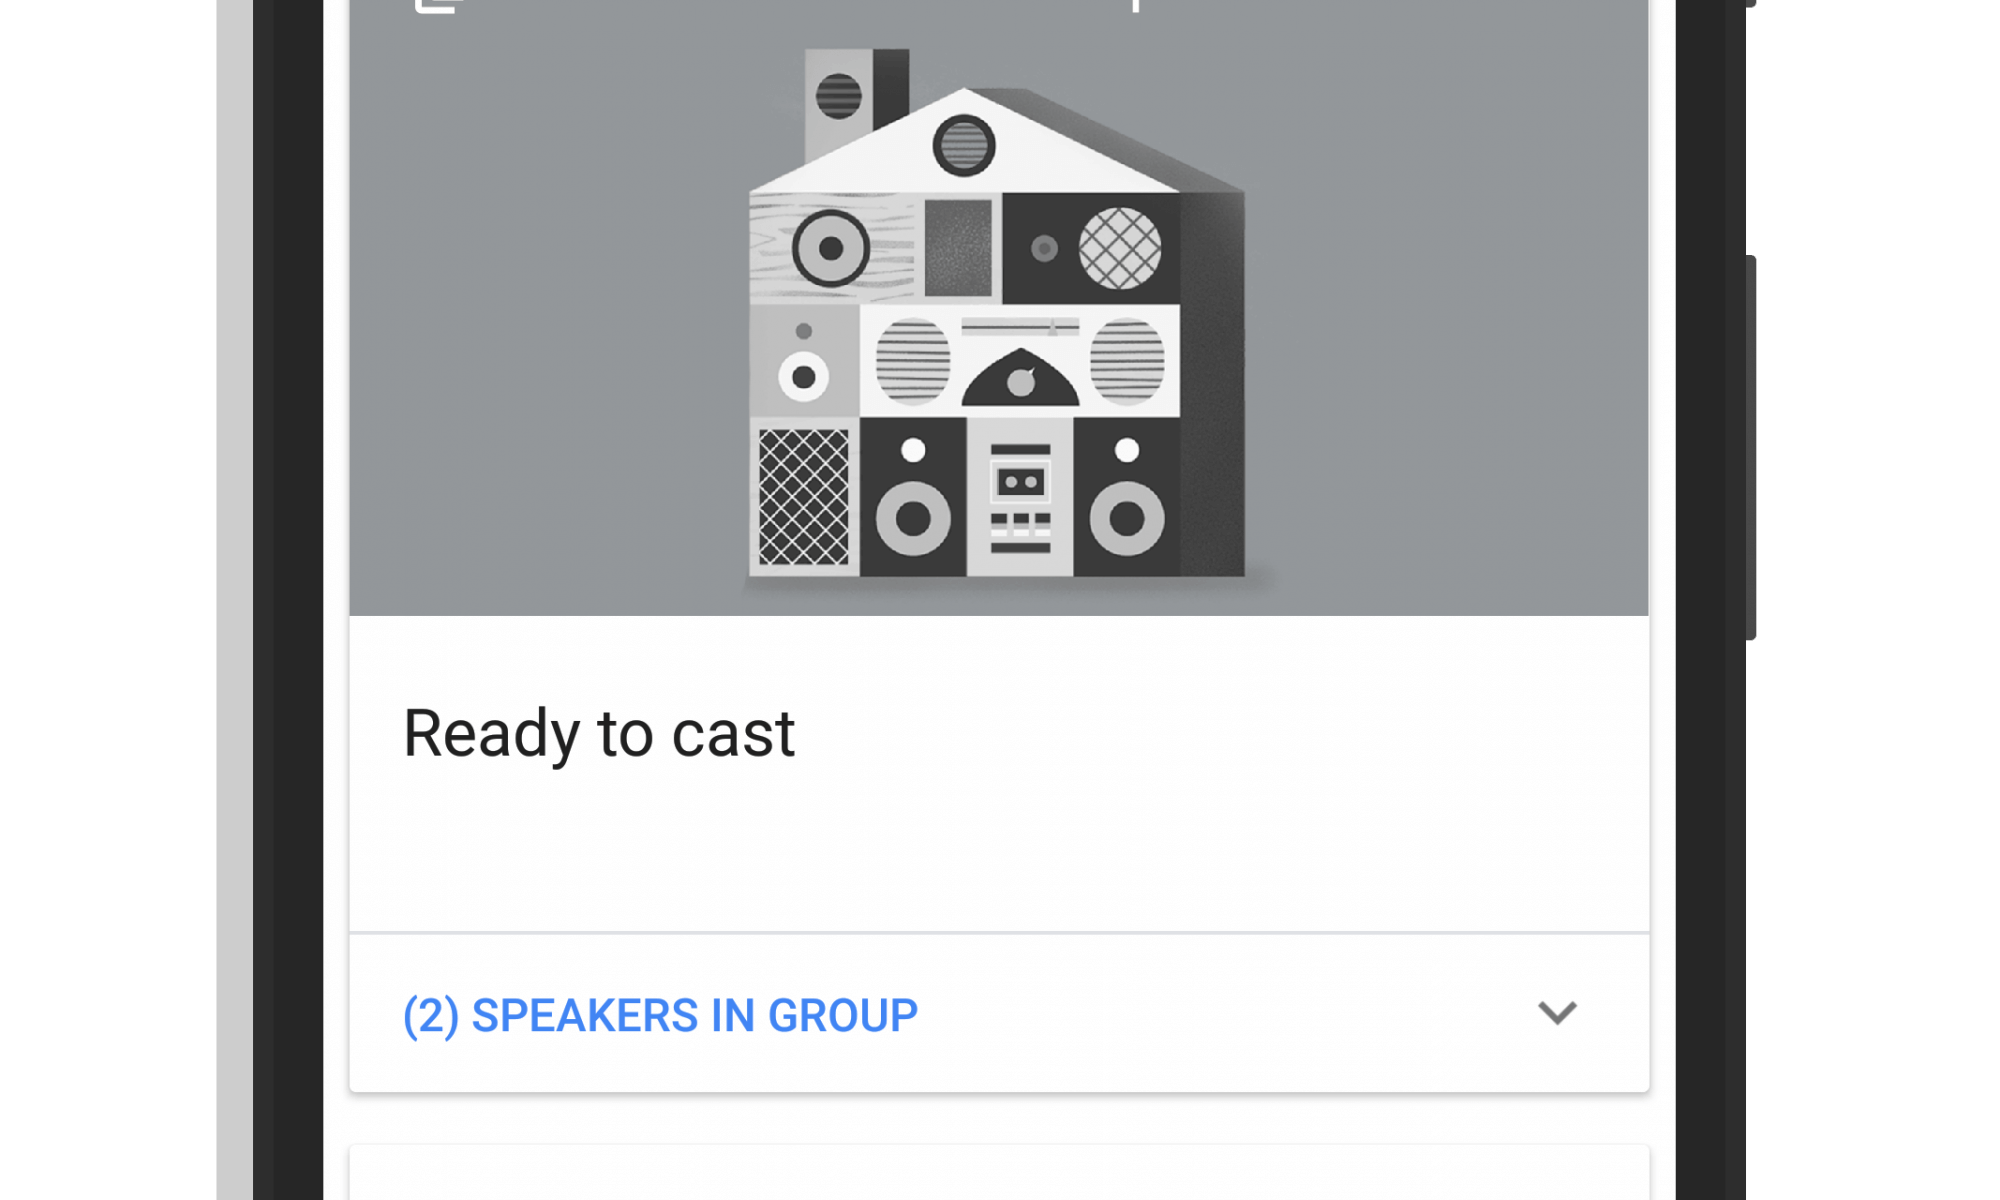 My Google Home Group in the Home App